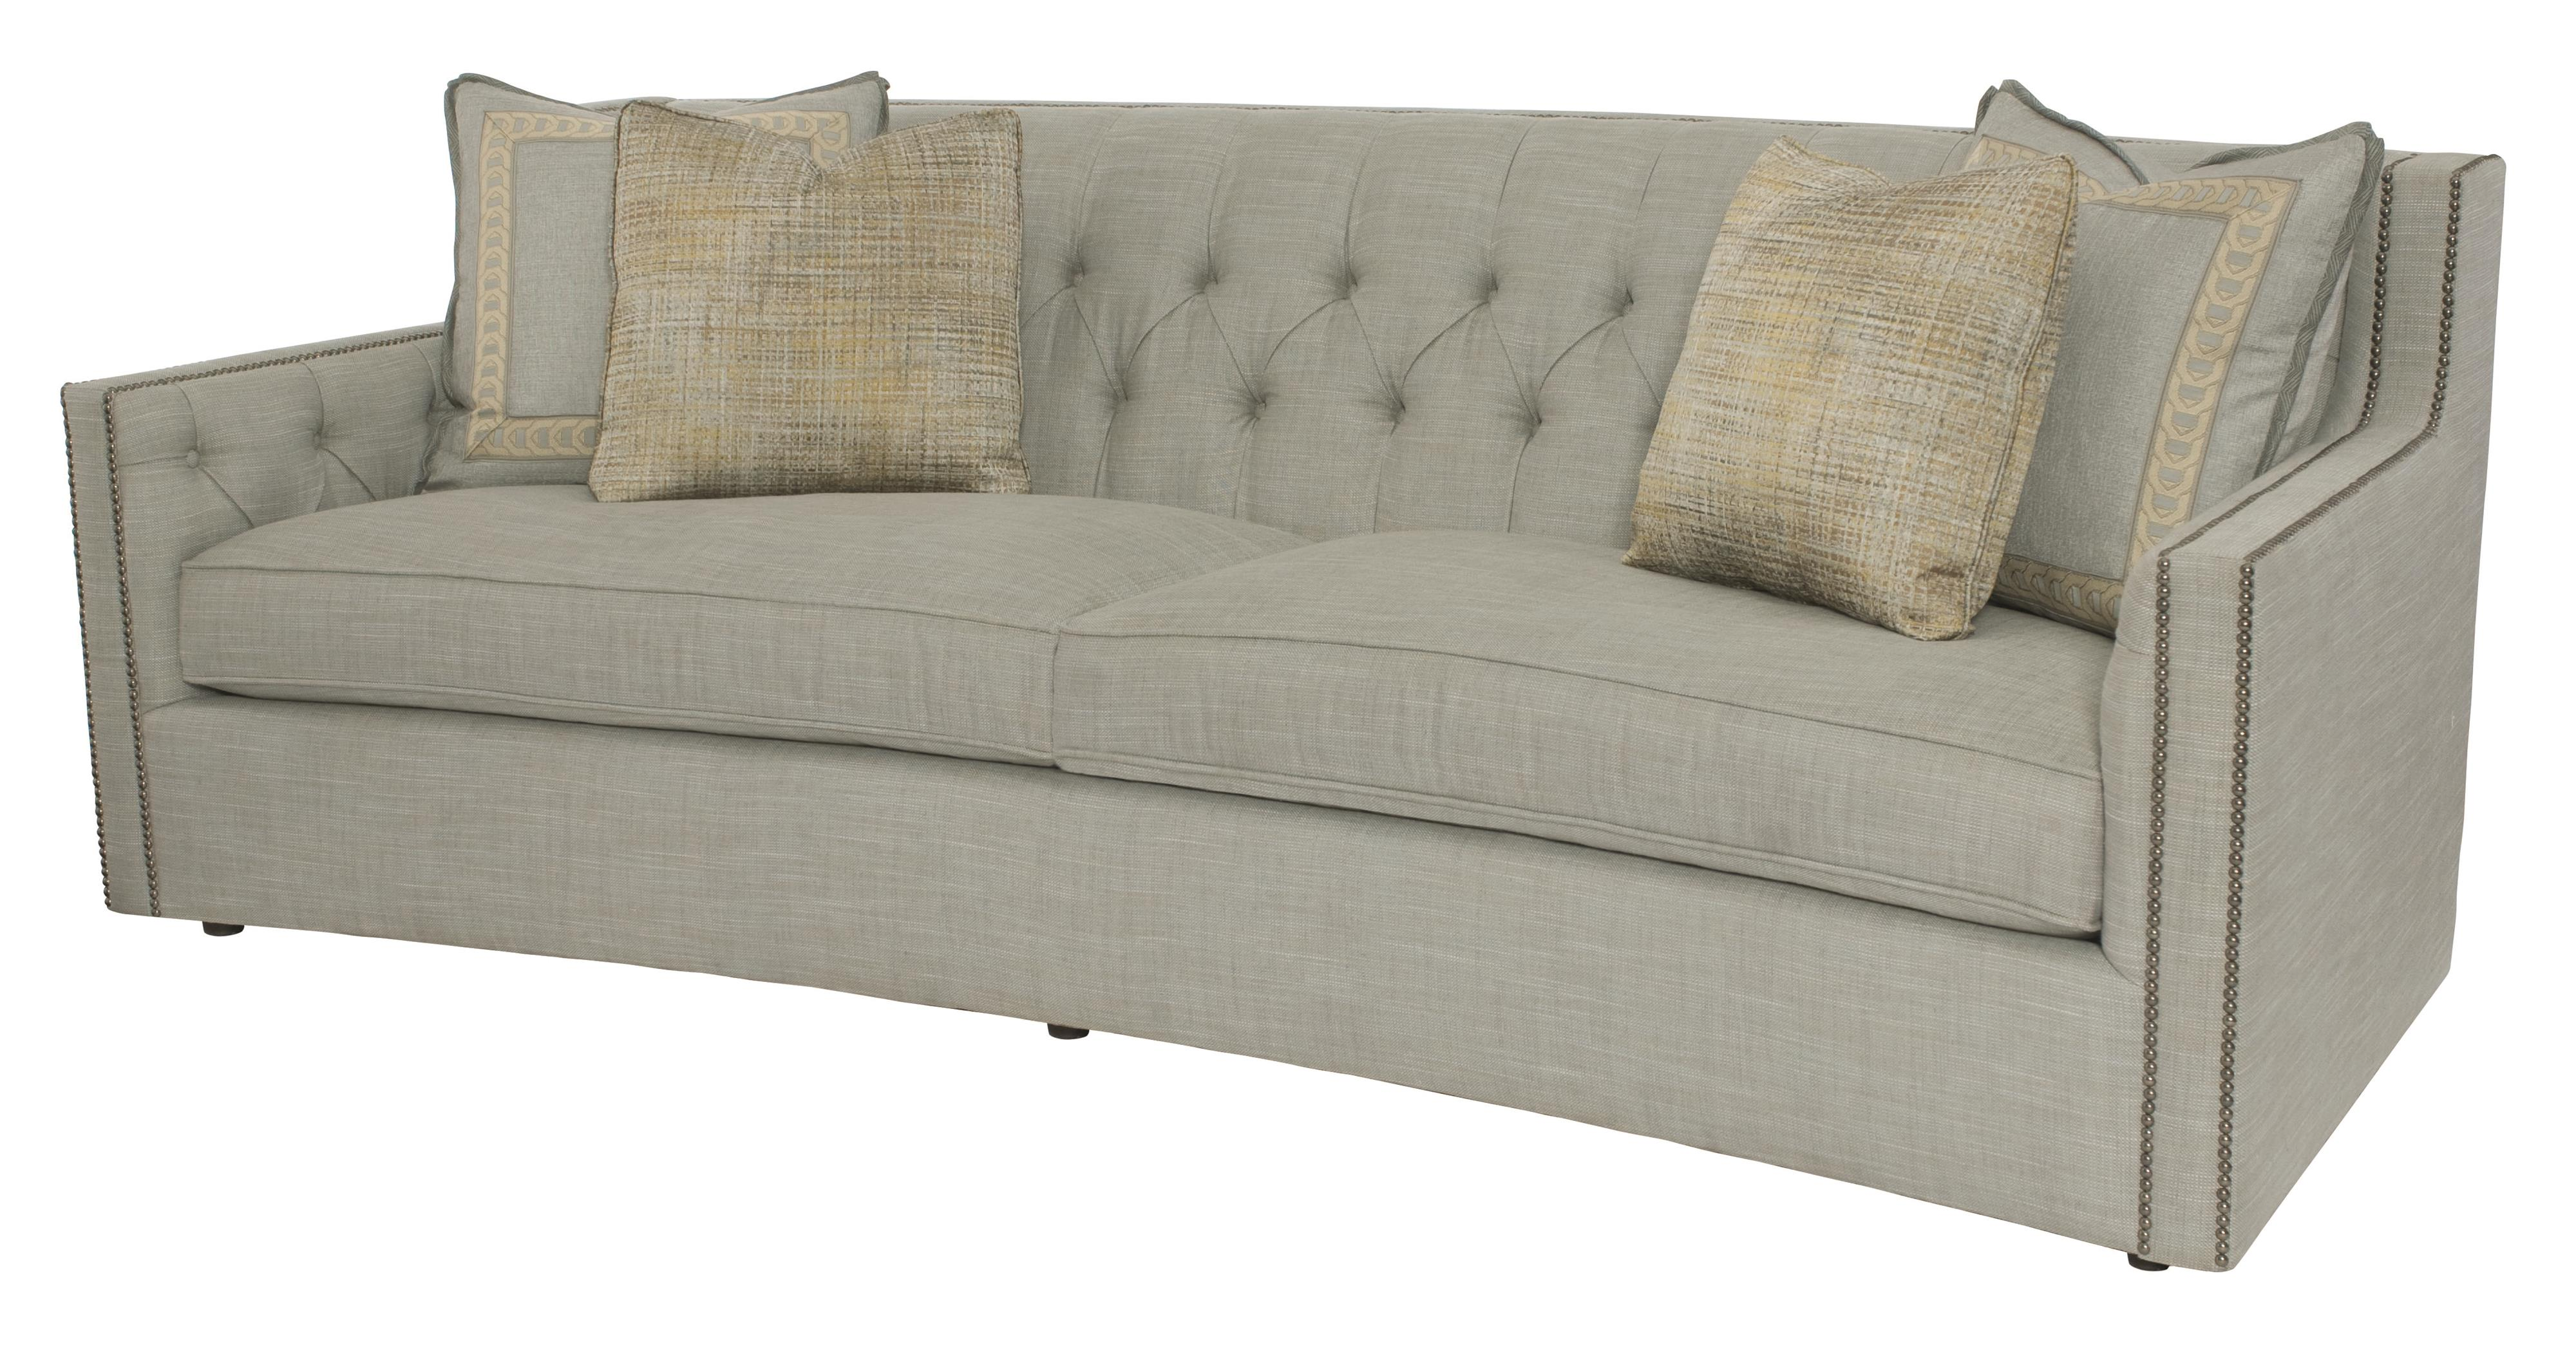 Candace Sofa by Bernhardt at Stuckey Furniture